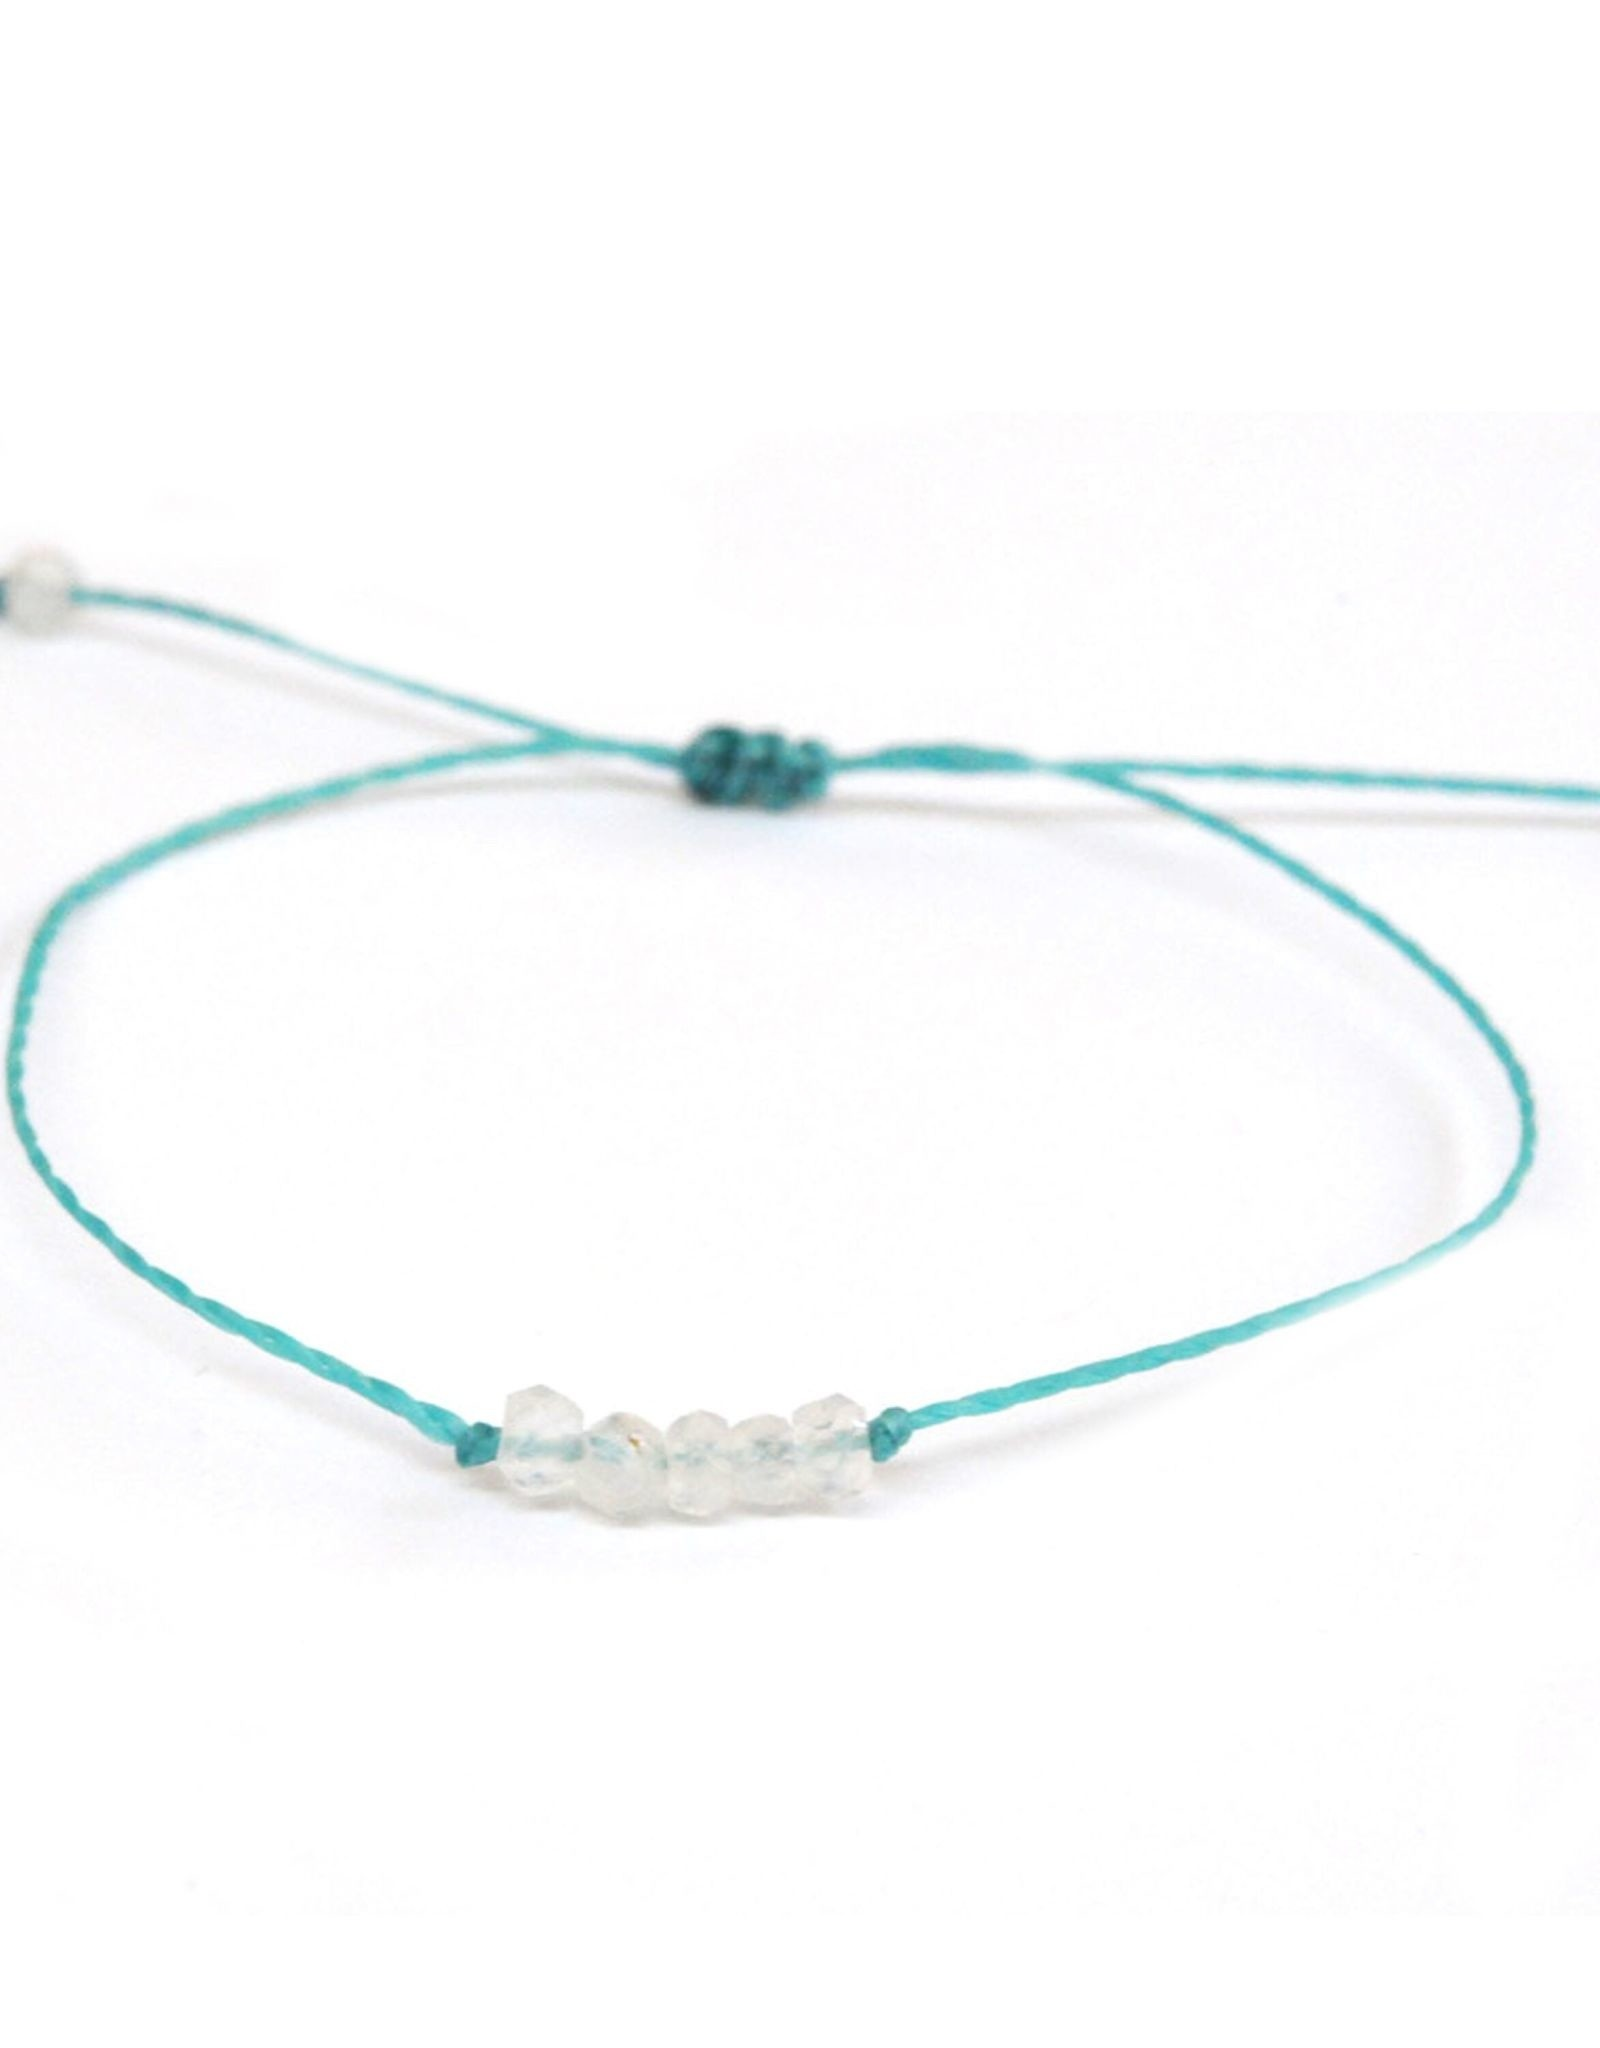 Waxed Thread Bracelet With Moonstone Beads